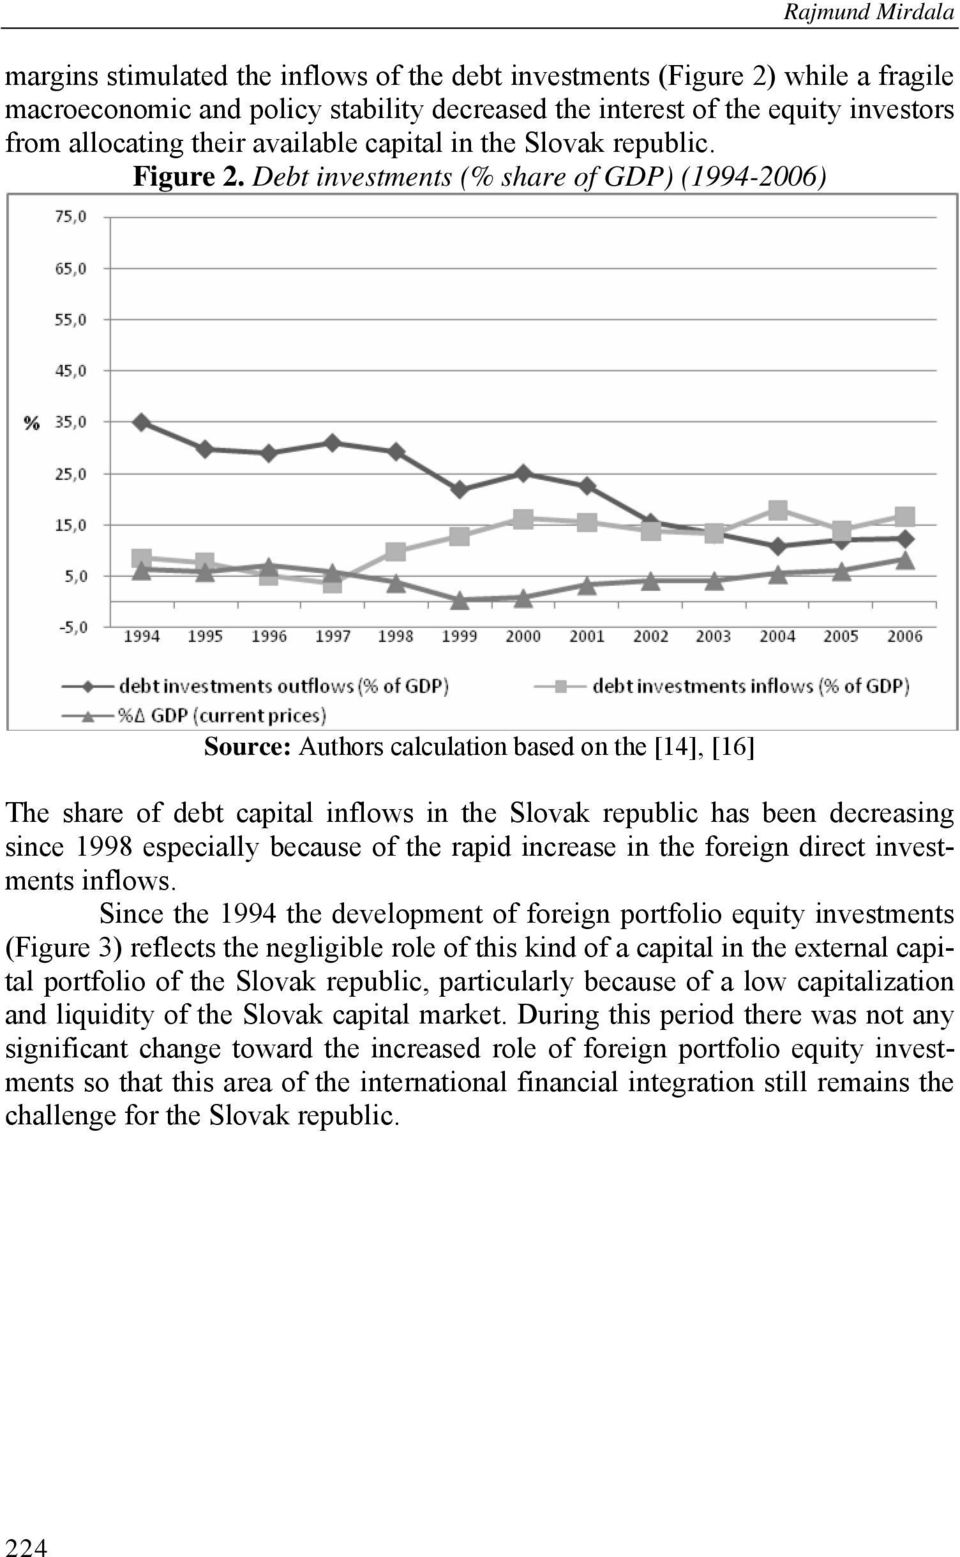 Debt investments (% share of GDP) (1994-2006) The share of debt capital inflows in the Slovak republic has been decreasing since 1998 especially because of the rapid increase in the foreign direct